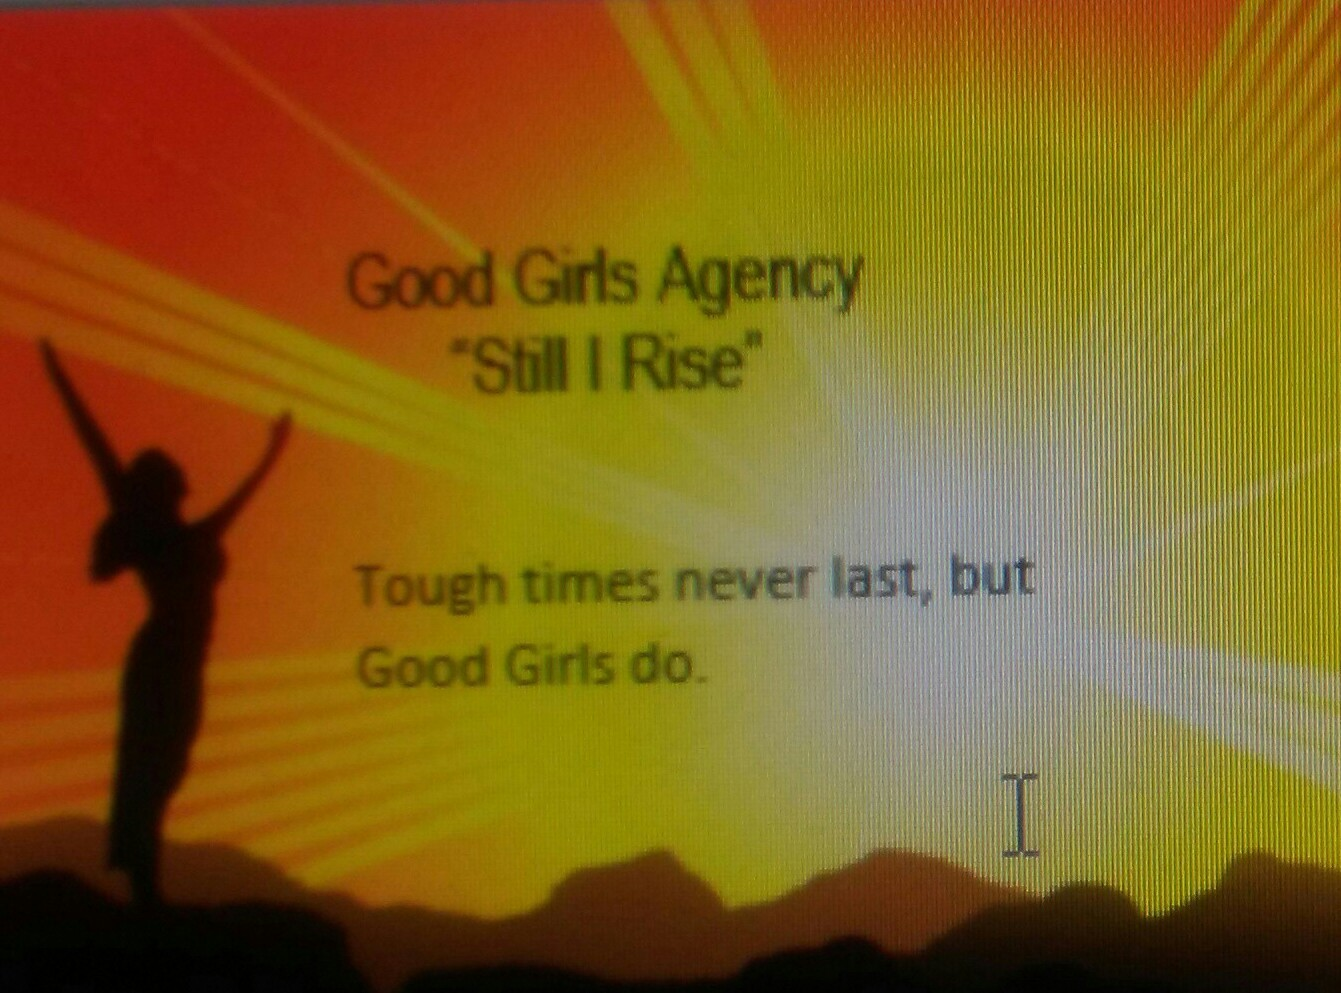 The Good Girls Agency